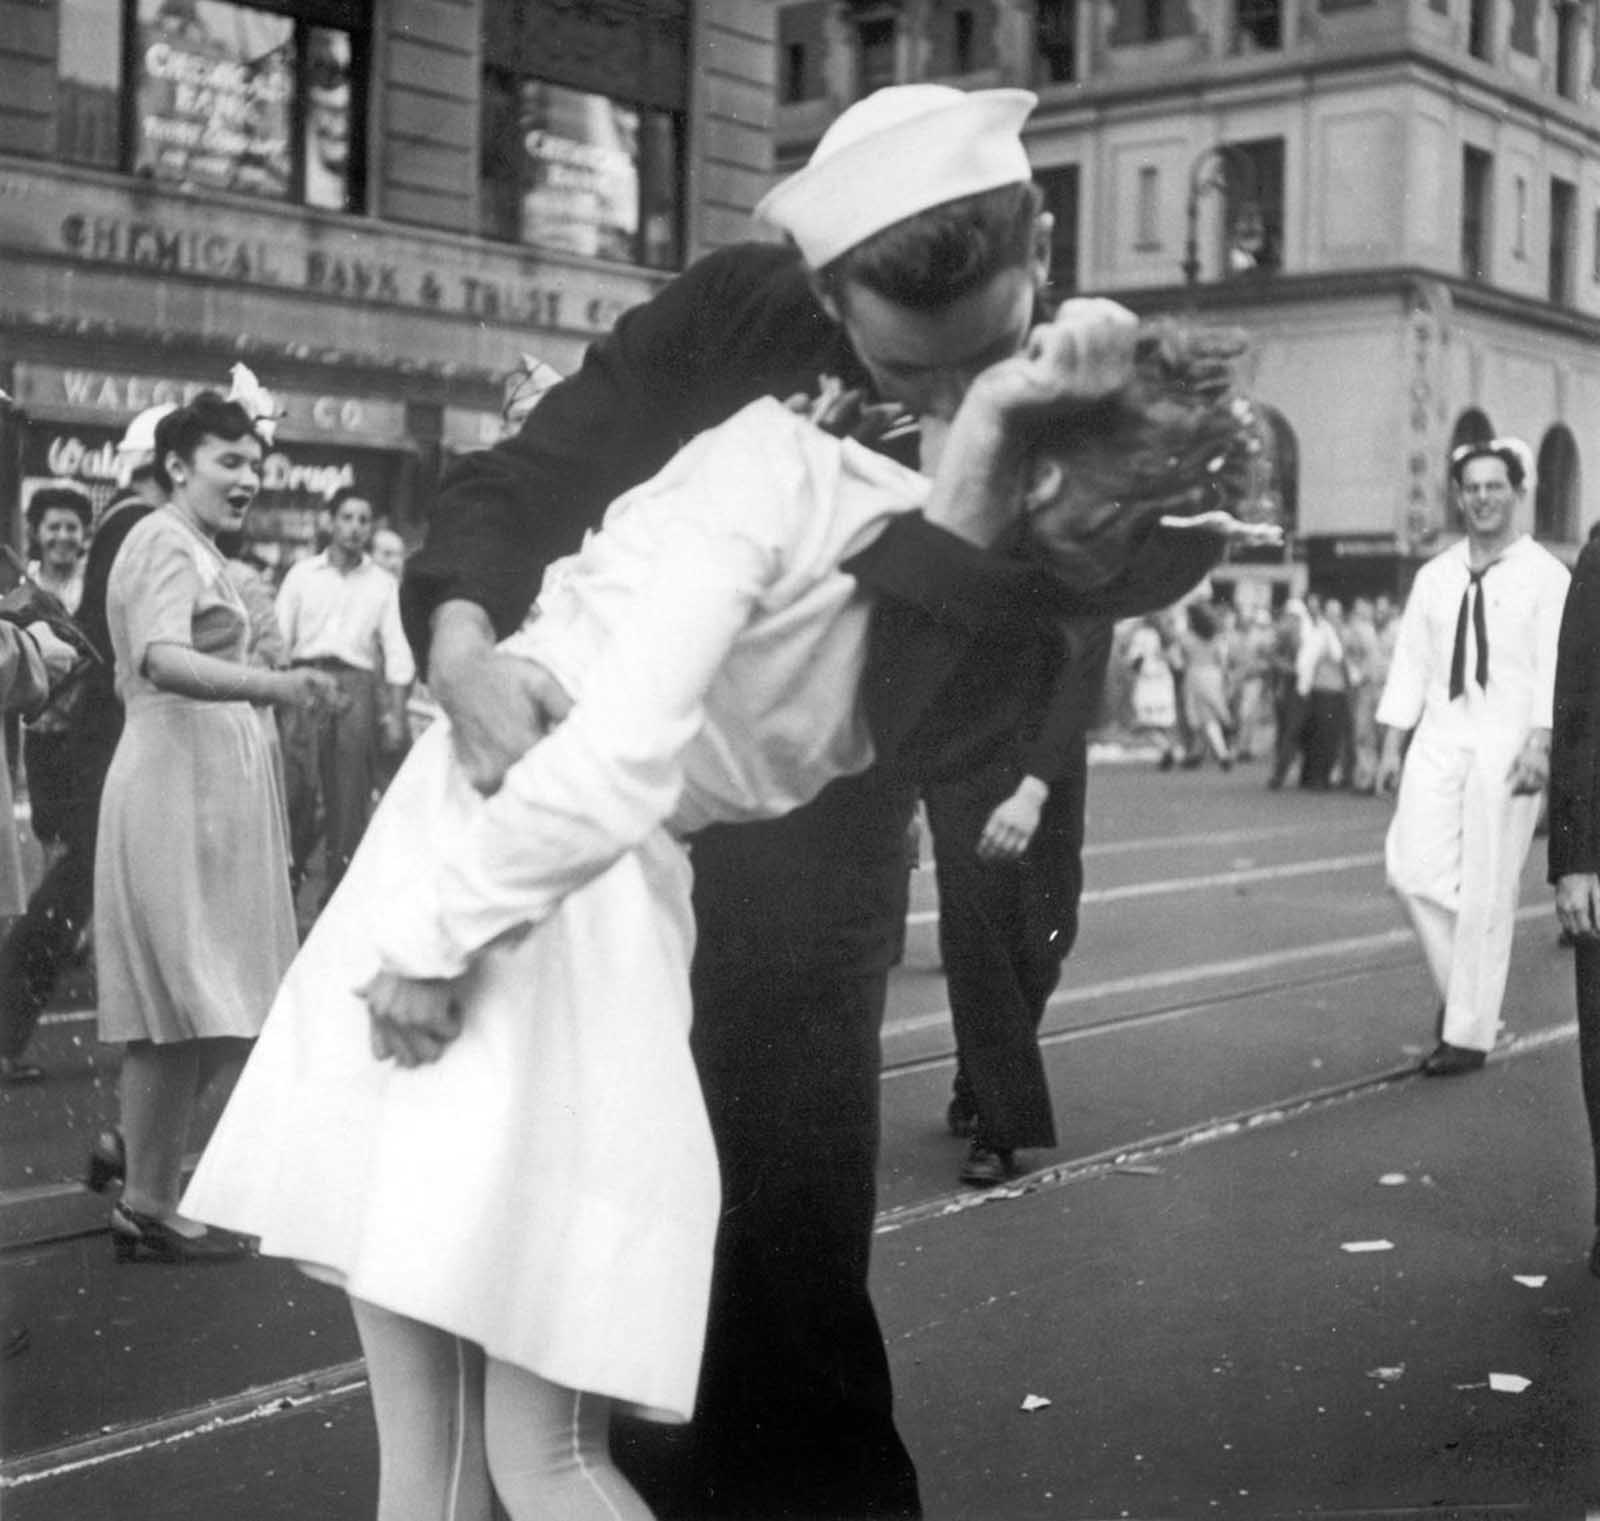 A sailor and a nurse kiss passionately in Manhattan's Times Square, as New York City celebrates the end of World War II on August 14, 1945.